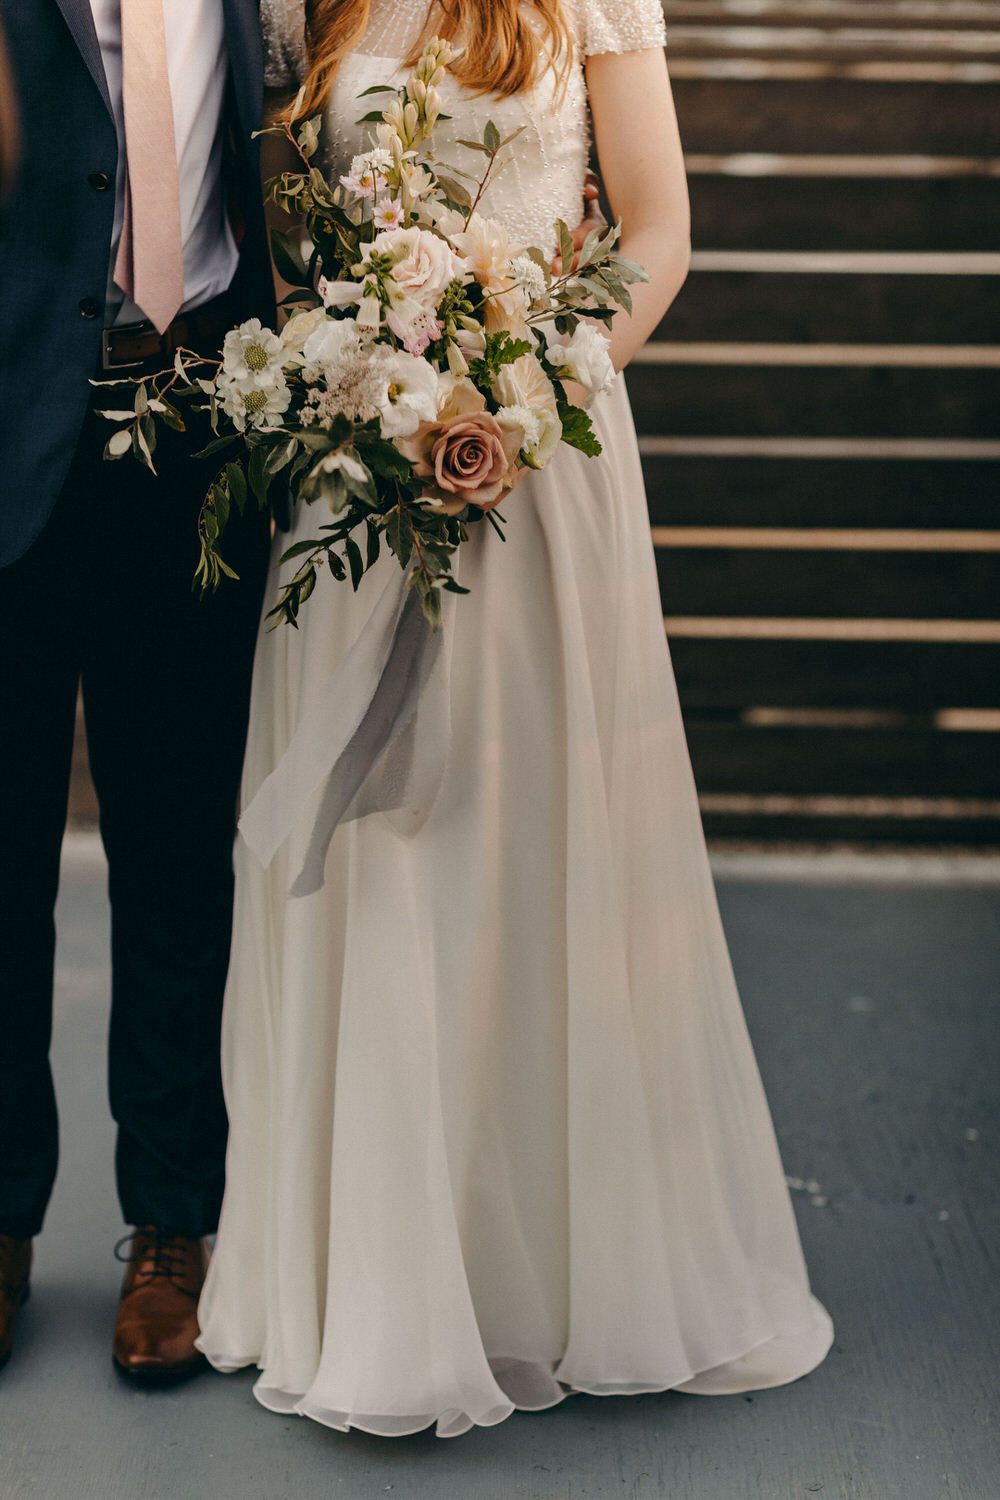 burroughes-building-wedding-toronto-christine-lim-photography-blush-and-bowties-061